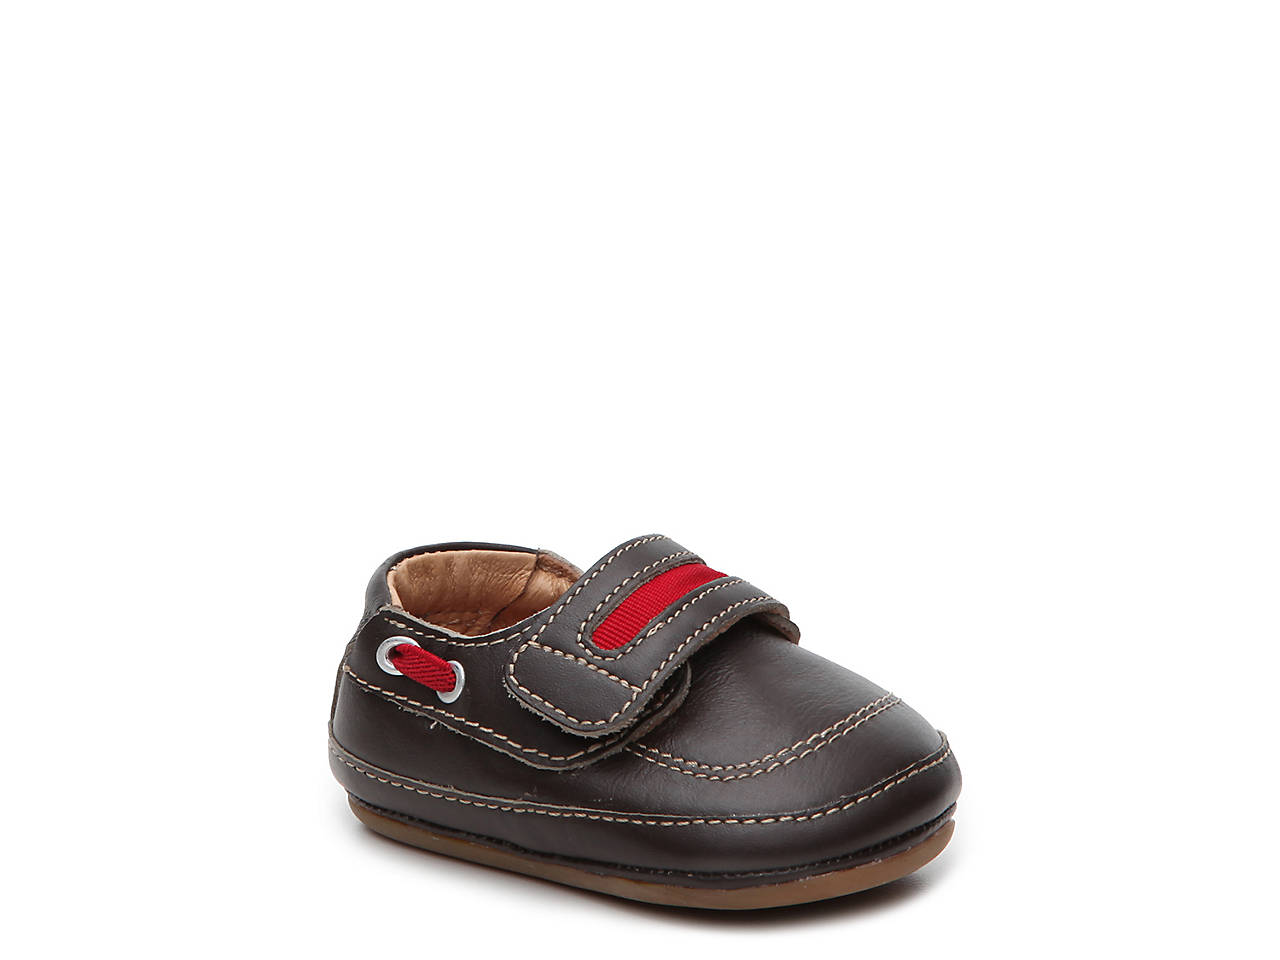 Infant//Toddler umi Gene Crib Shoe